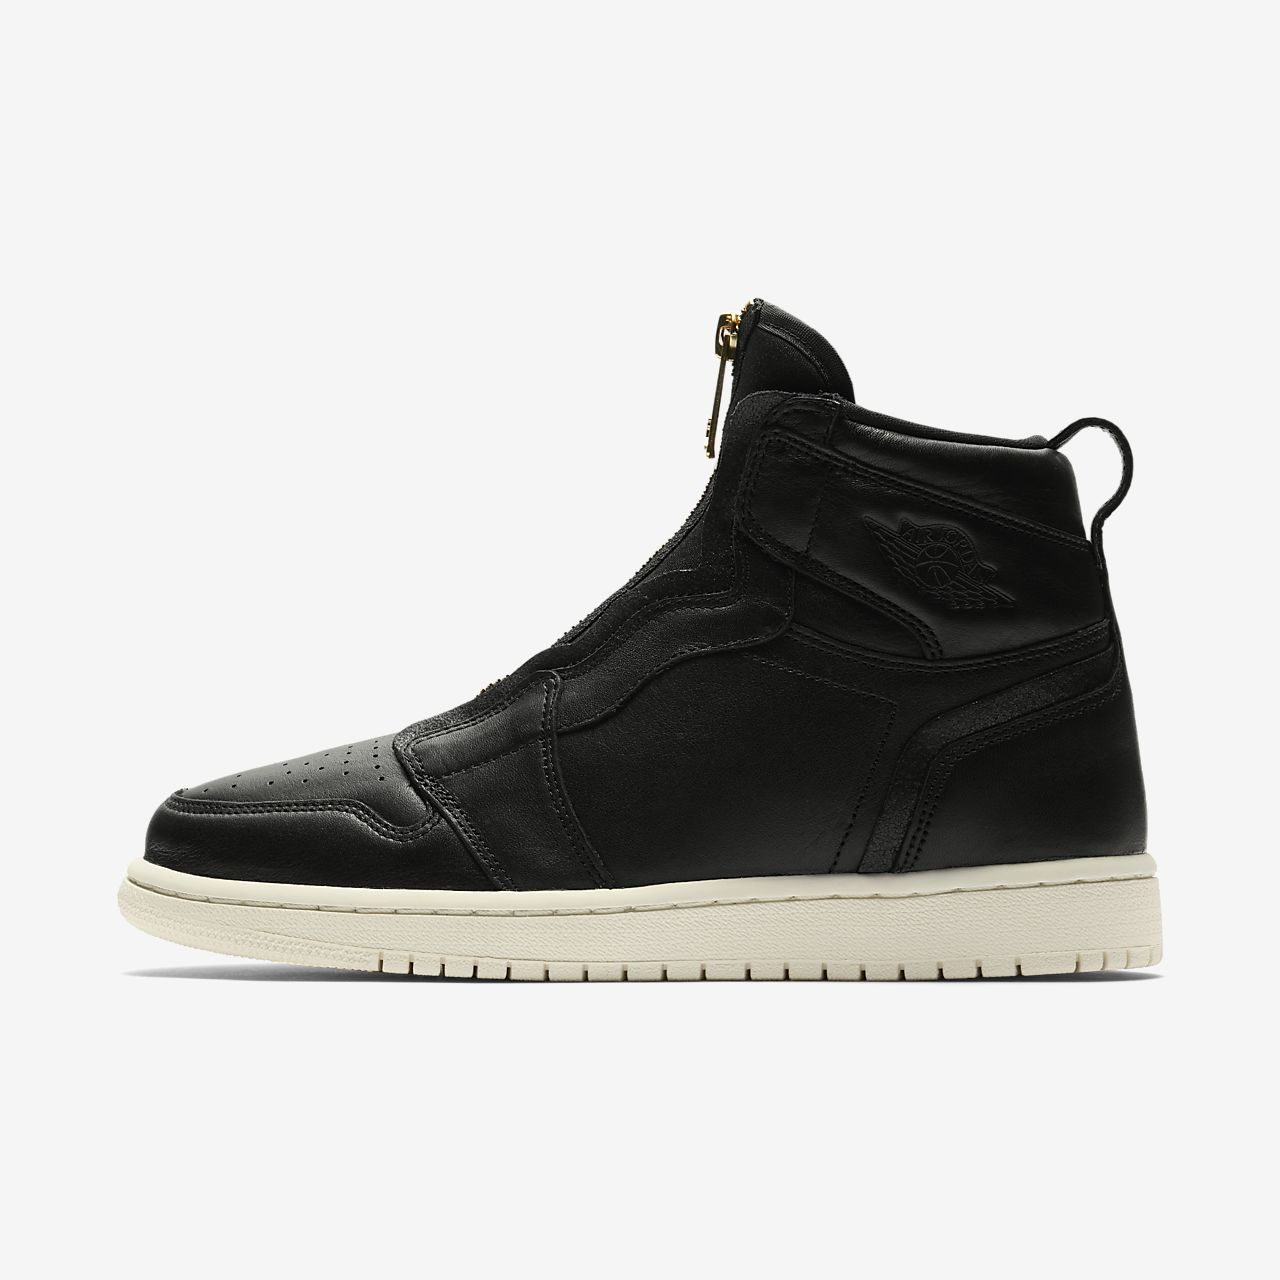 wholesale dealer 13305 5b9c6 Air Jordan 1 High Zip